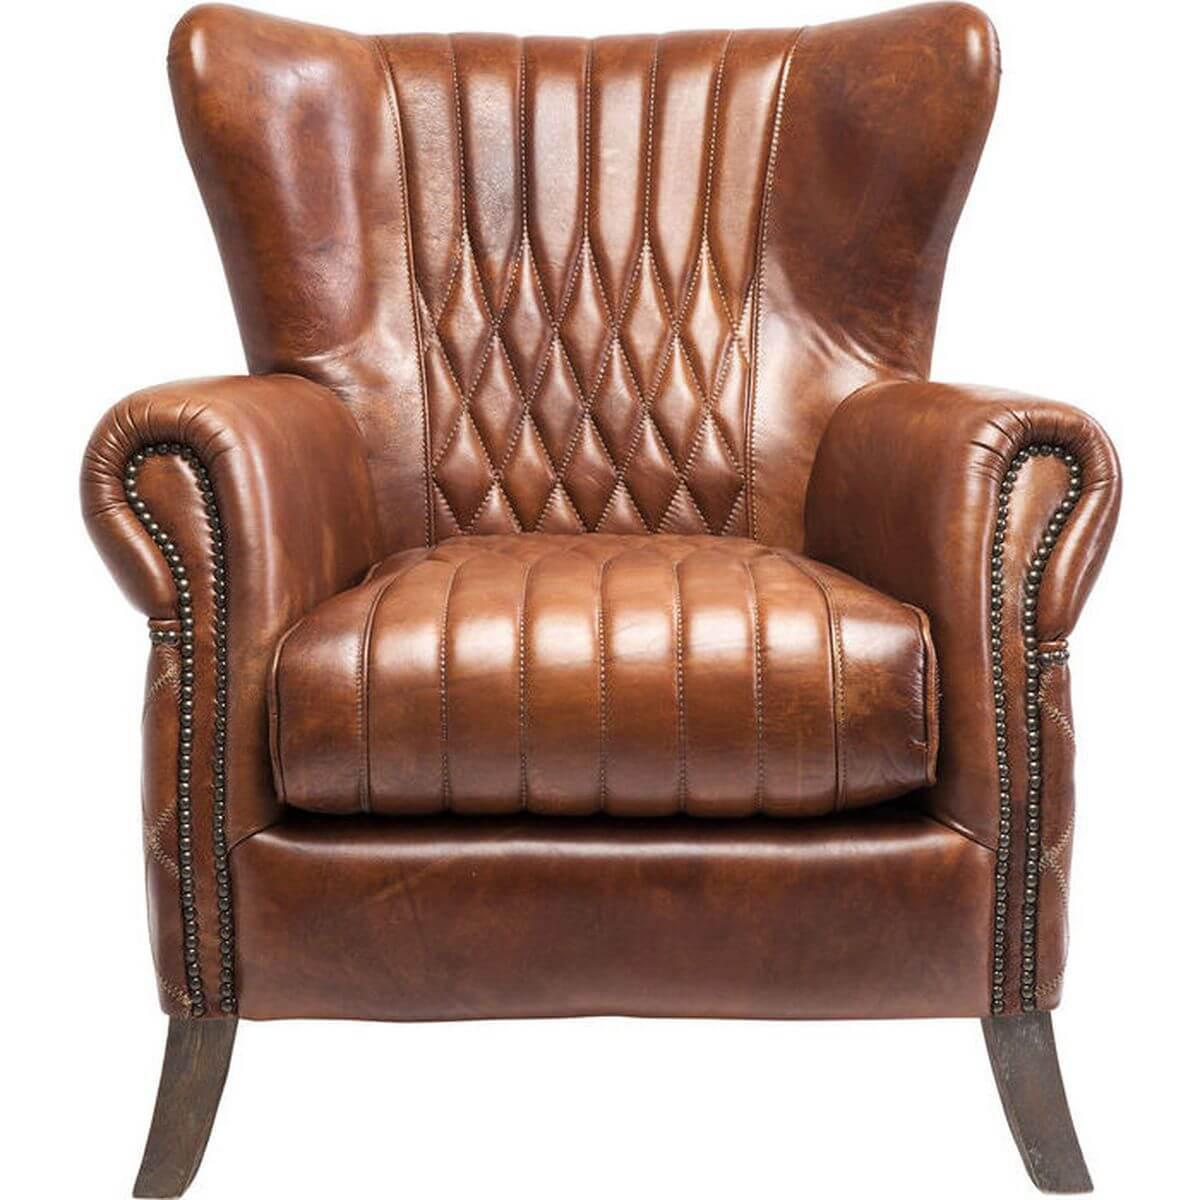 COUNTRY SIDE by Kare Fauteuil